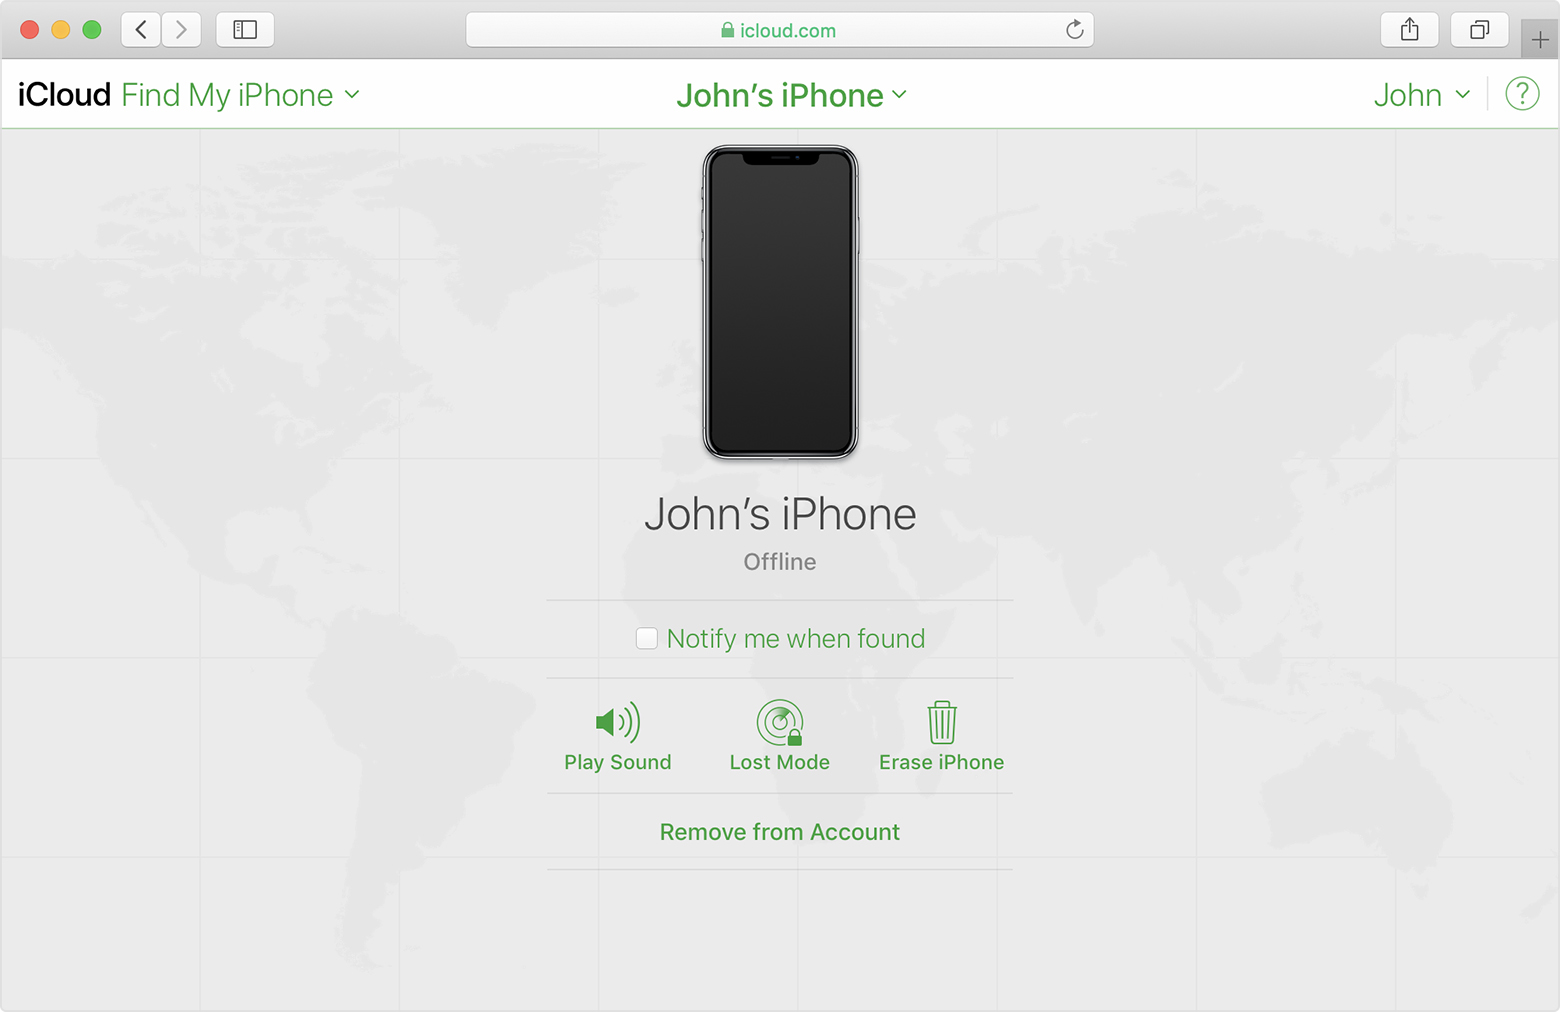 iCloud Find My iPhone showing John's iPhone